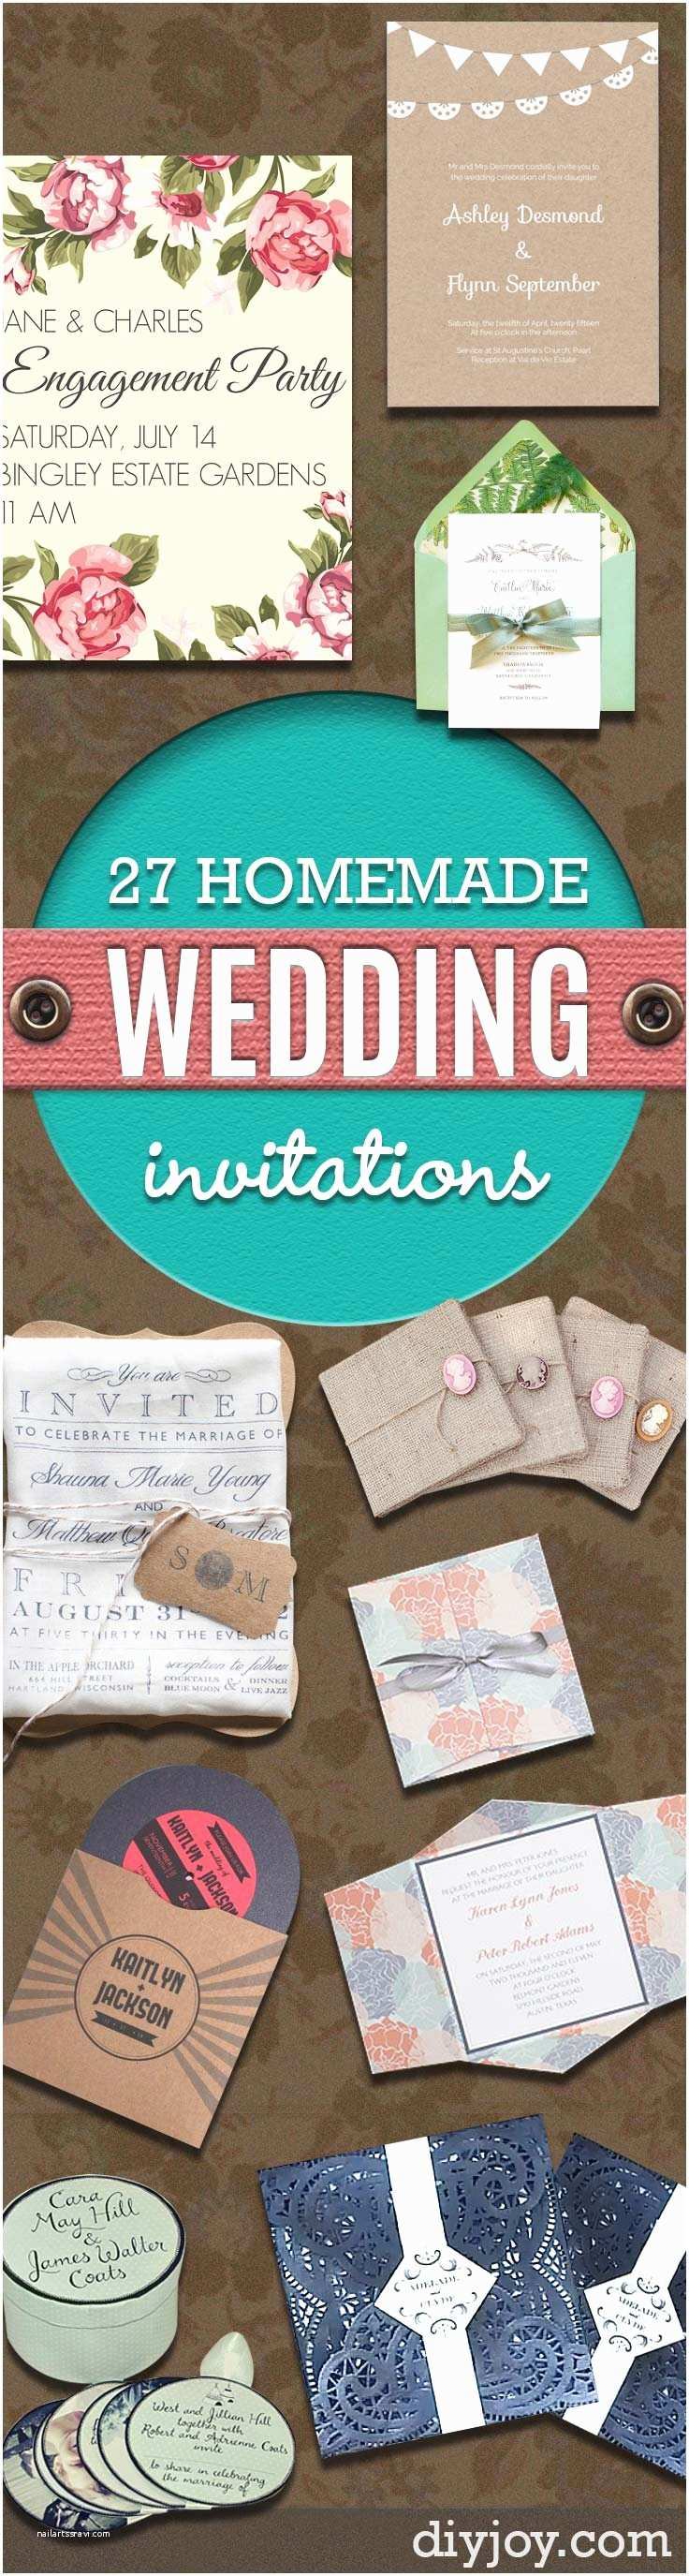 Diy Vintage Wedding Invitation Ideas 27 Fabulous Diy Wedding Invitation Ideas